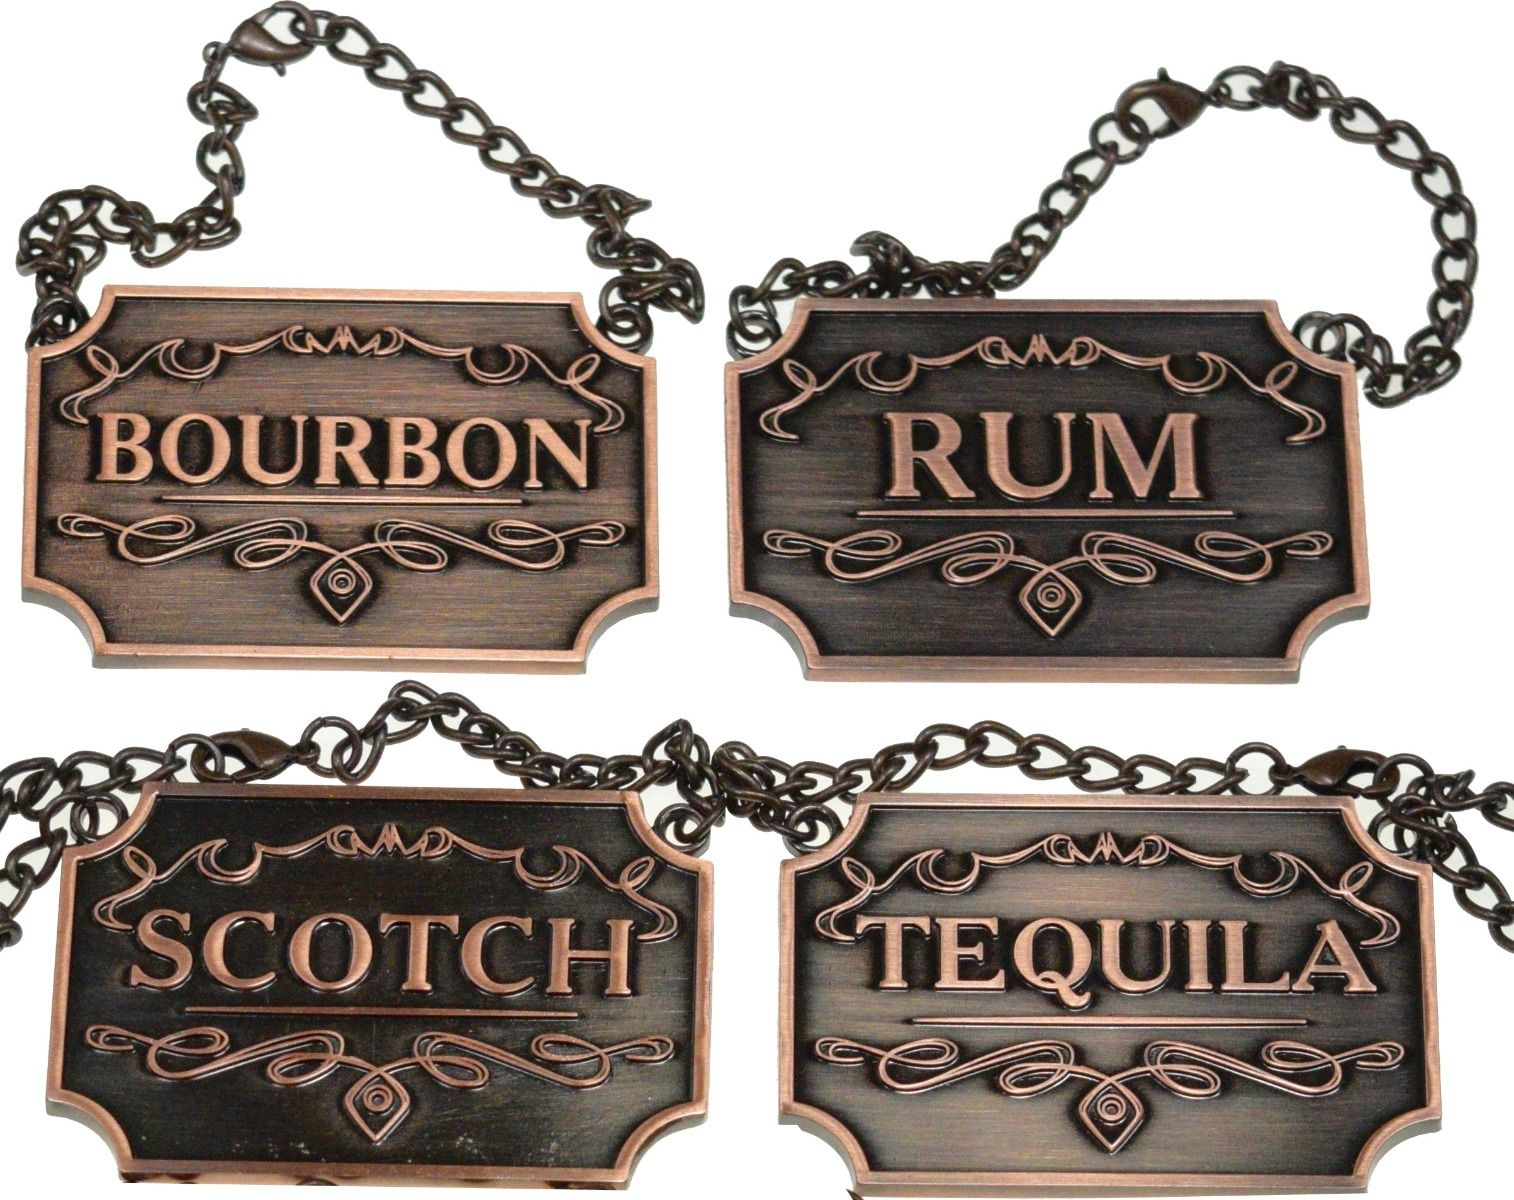 Copper Liquor Labels for decanters